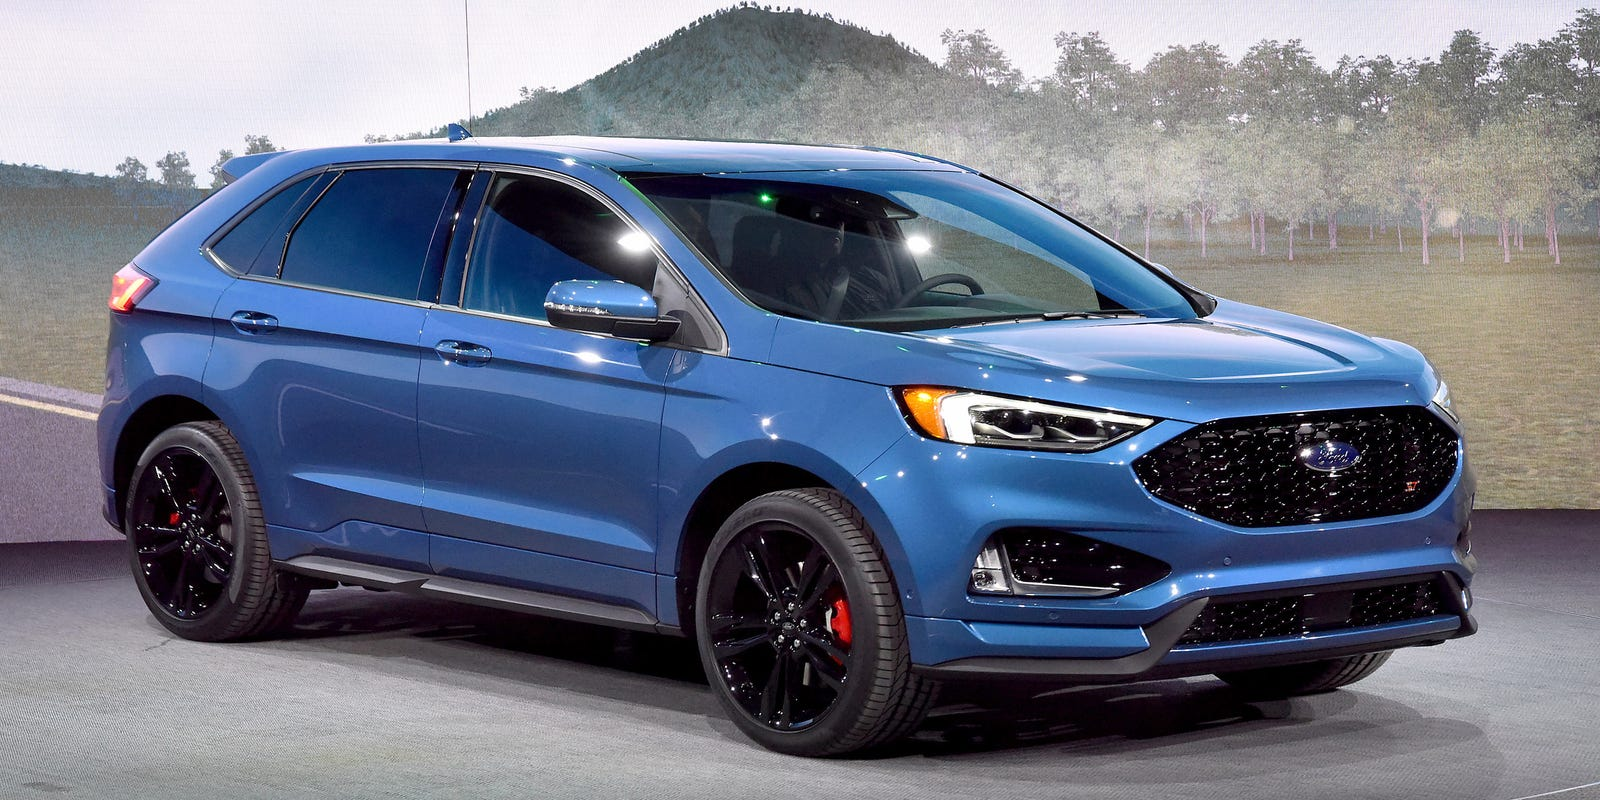 Ford Edge may not have a future, as Oakville plant uncertain